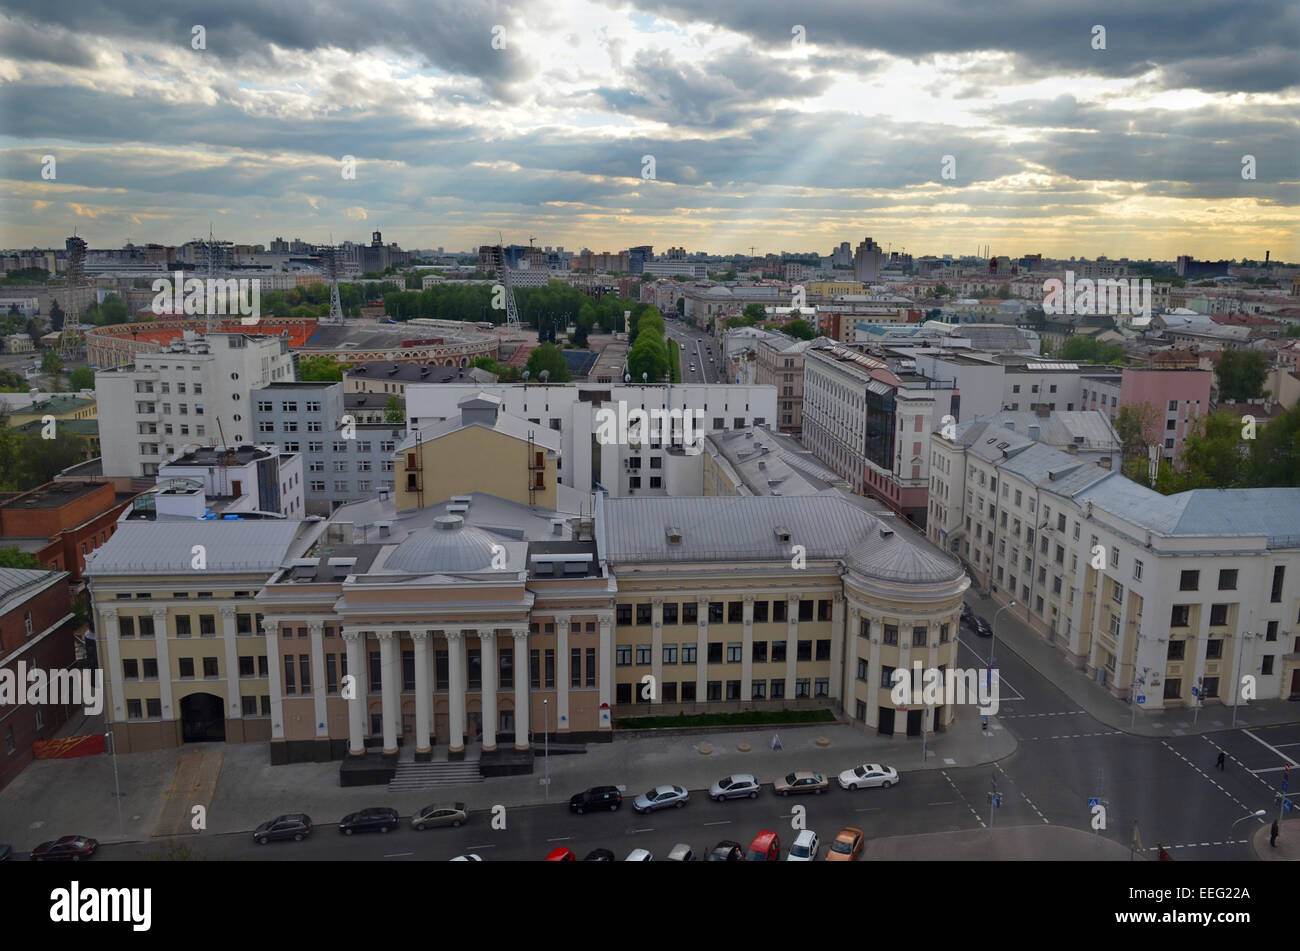 Minsk aerial view - Stock Image